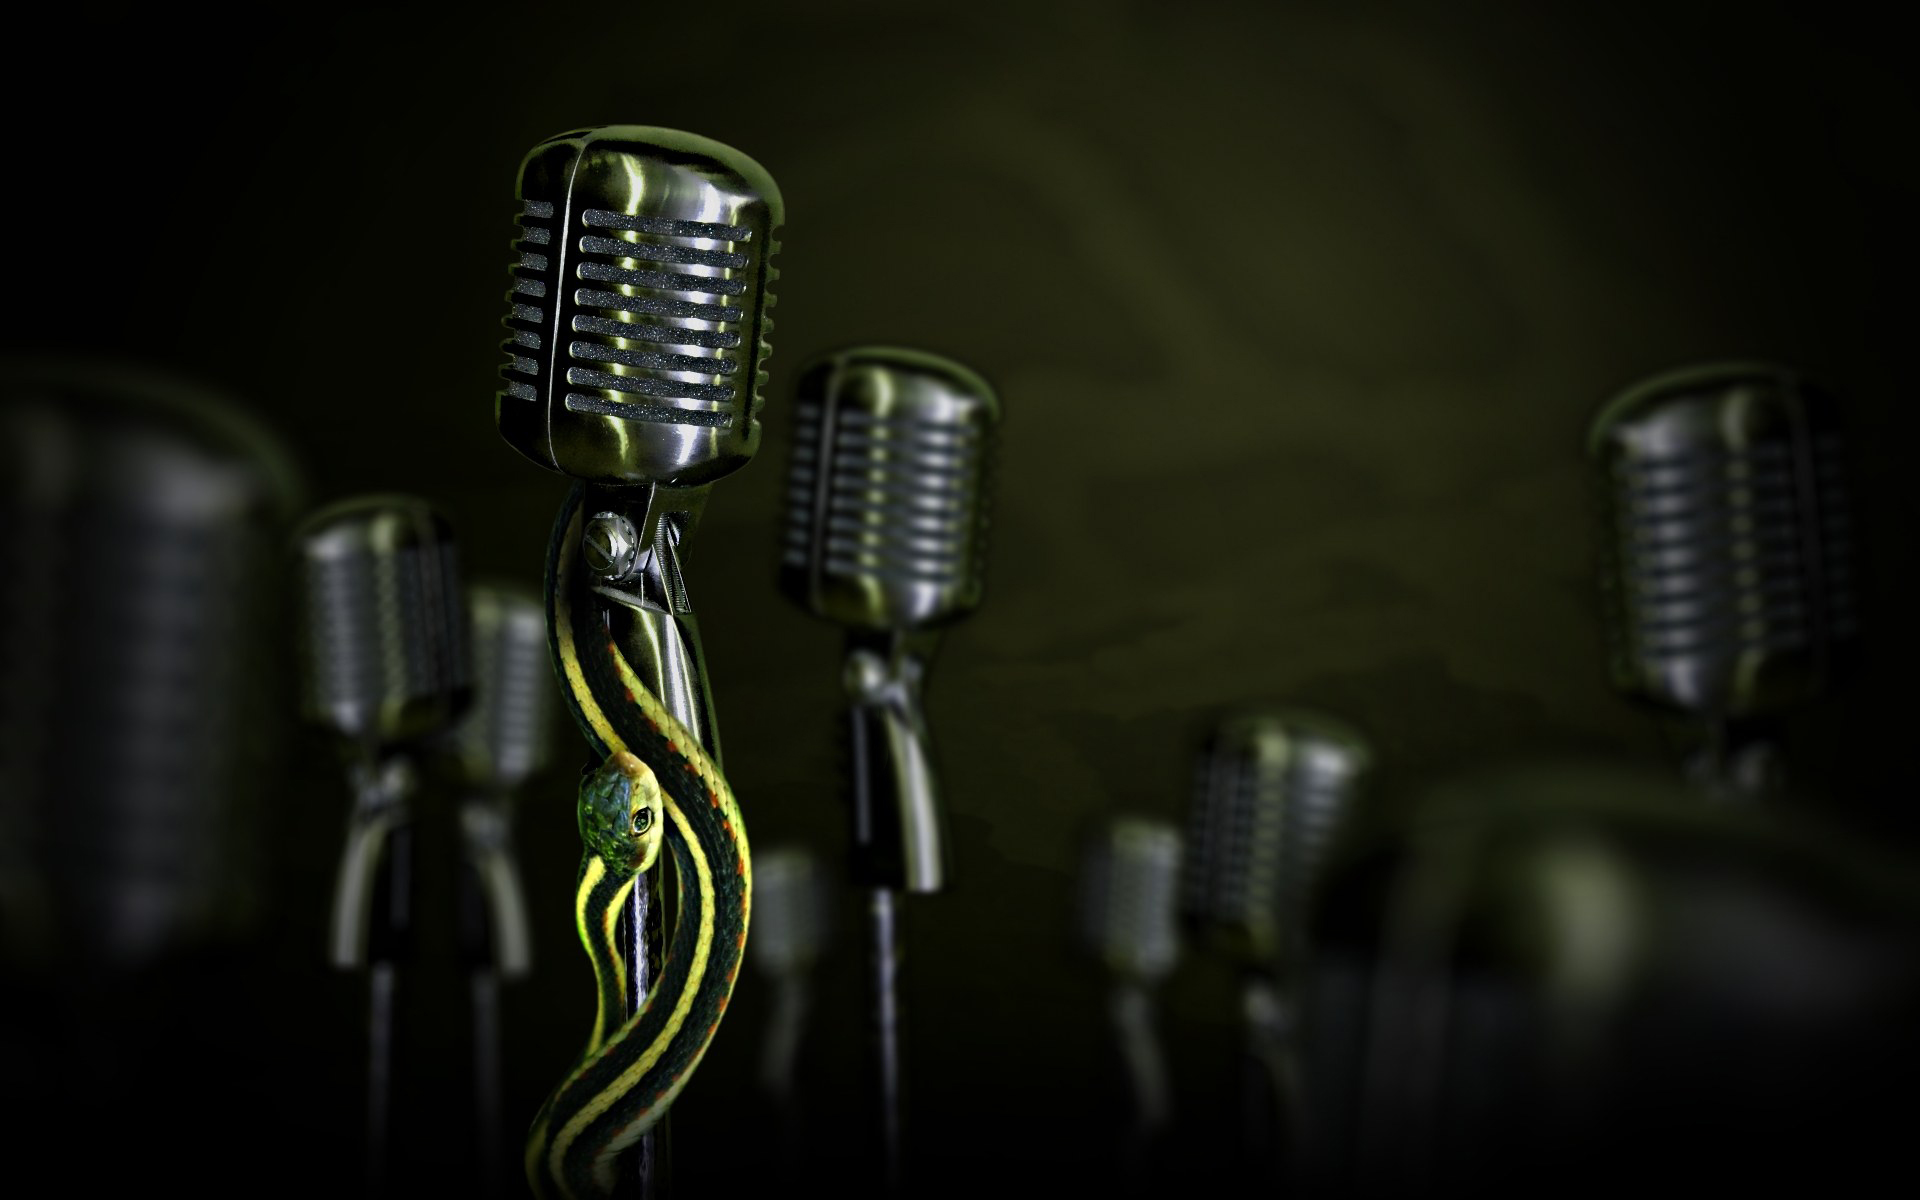 Snakes On Microphone Hd Wallpaper Background Image 1920x1200